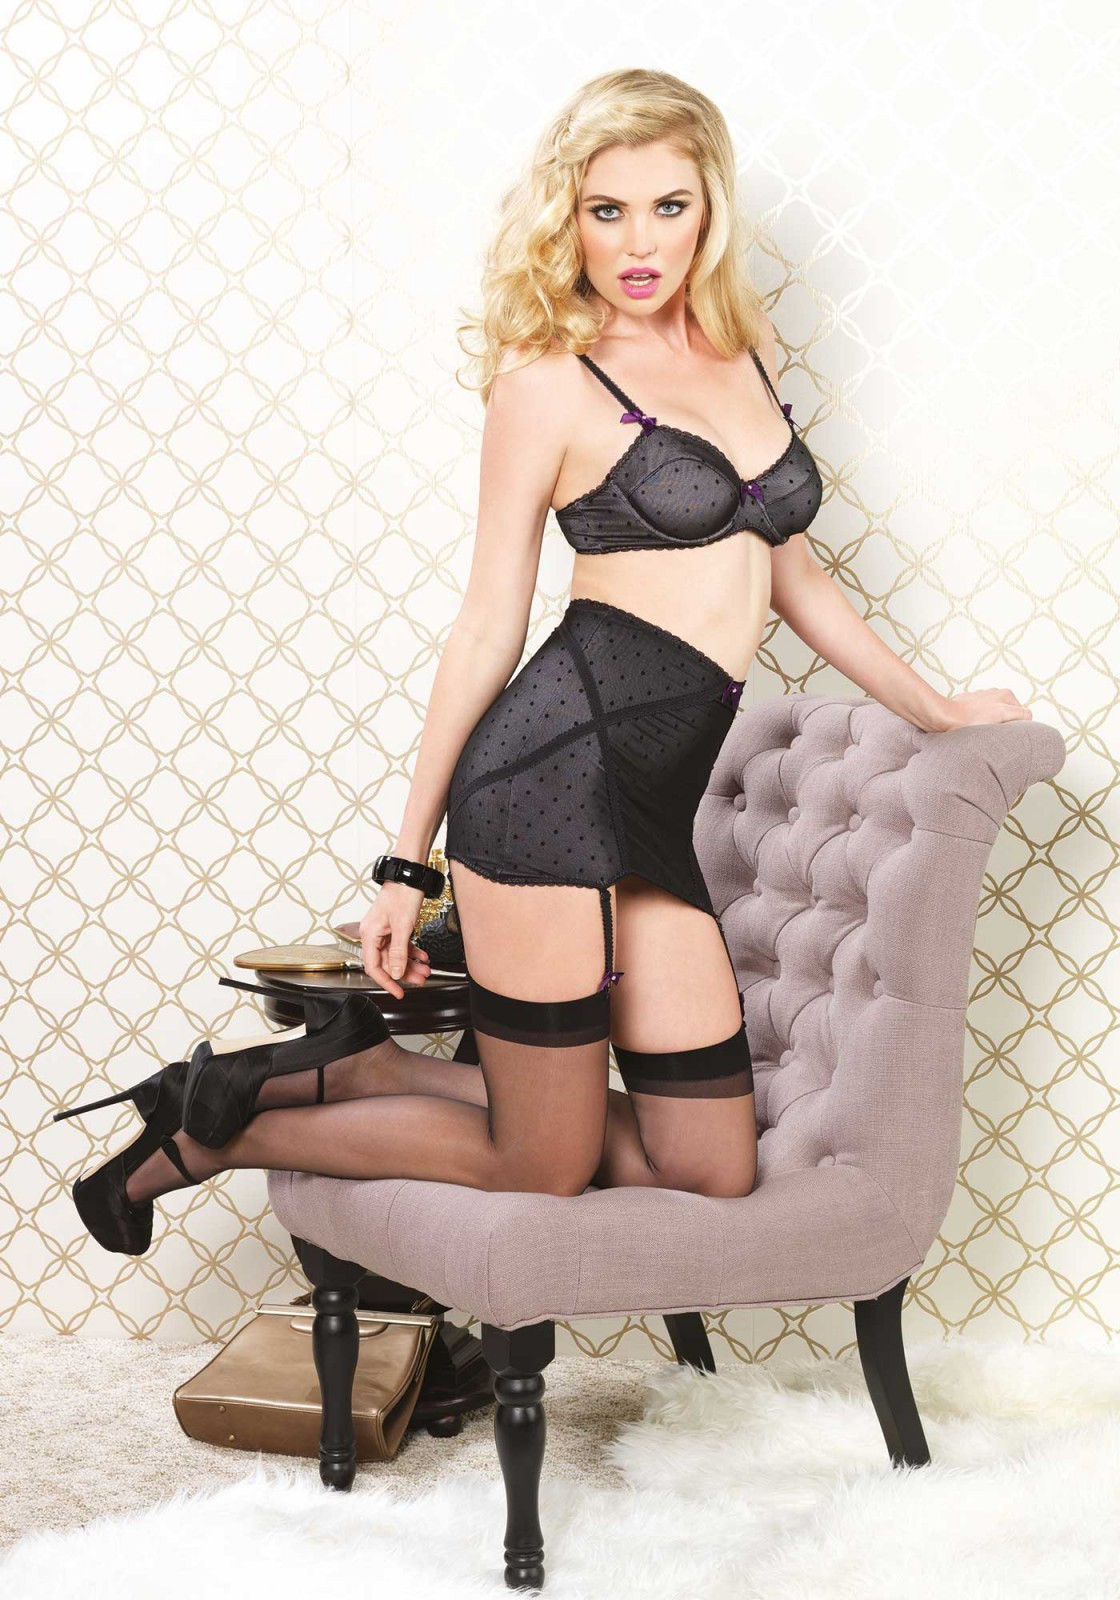 The sheer girdle garter with cross detailed straps combined with the sheer detailed bra makes this set very cheeky whereas the polkadot detail adds cuteness. The girdle garter will complement your figure and will definitely be comfortable to wear because of the soft material. It is also ideal to wear under a dress or skirt. Set also includes matching g-string.